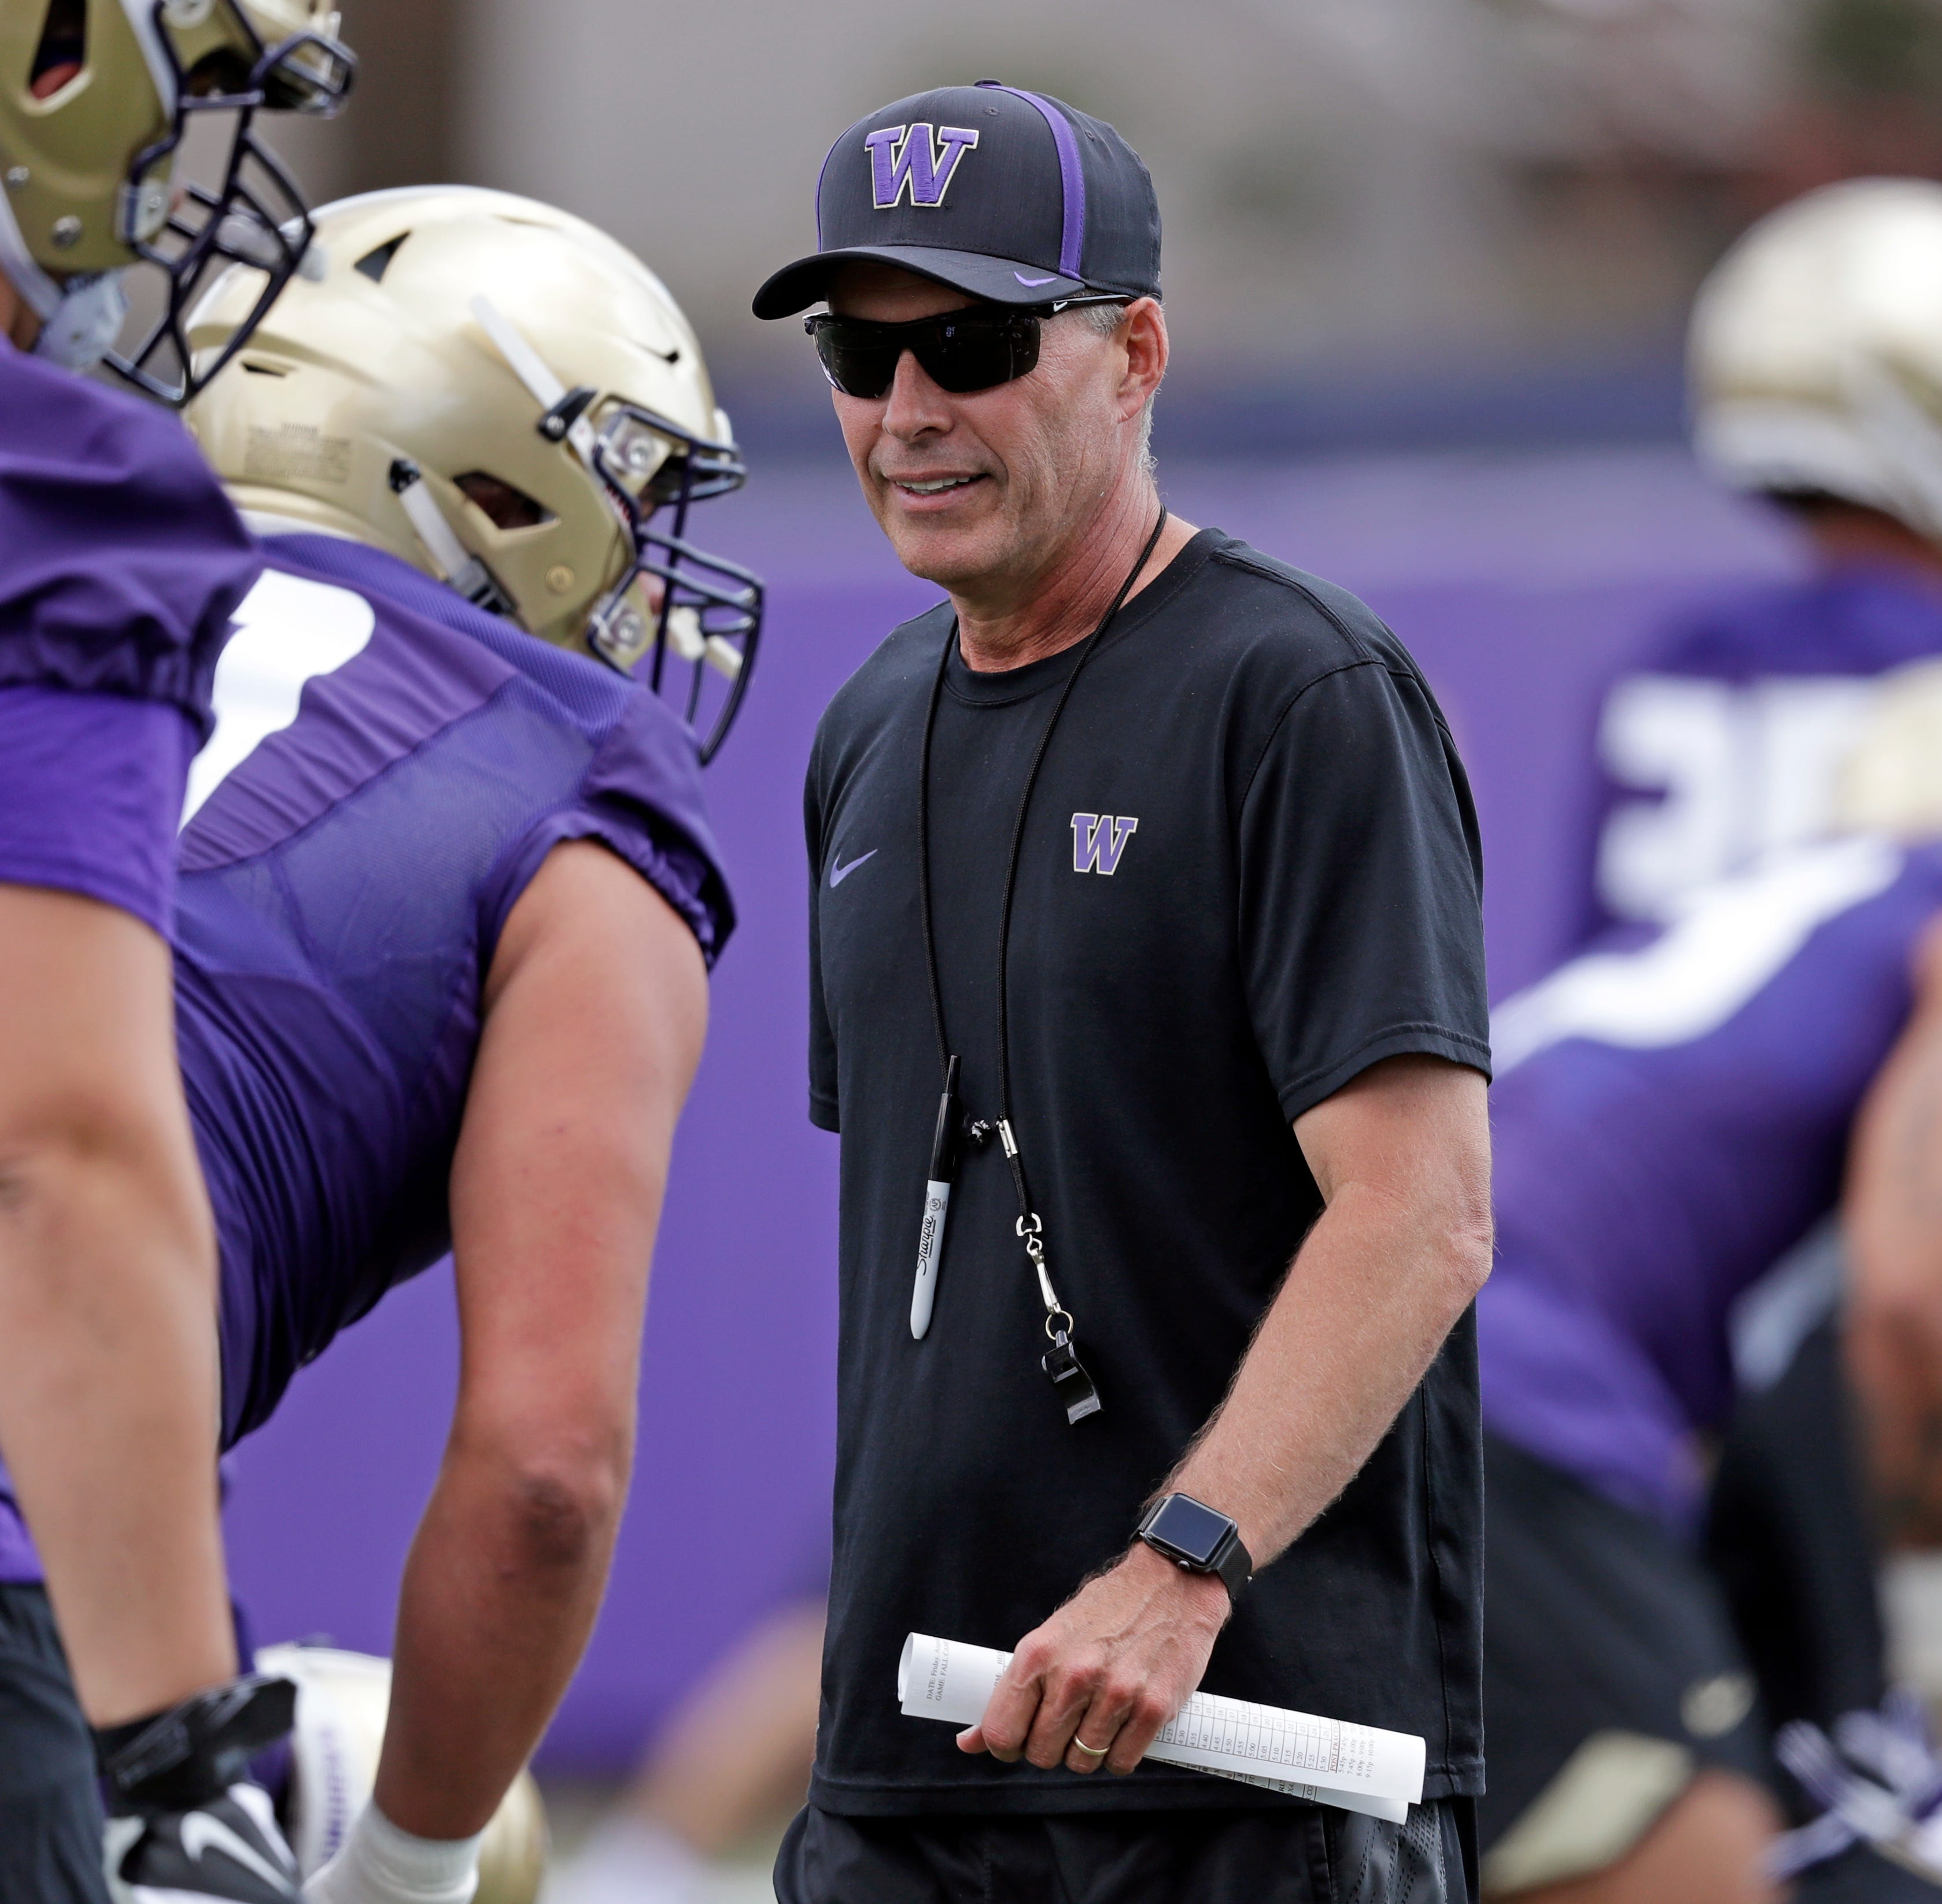 Huskies favored in Pac-12, a league in search of redemption